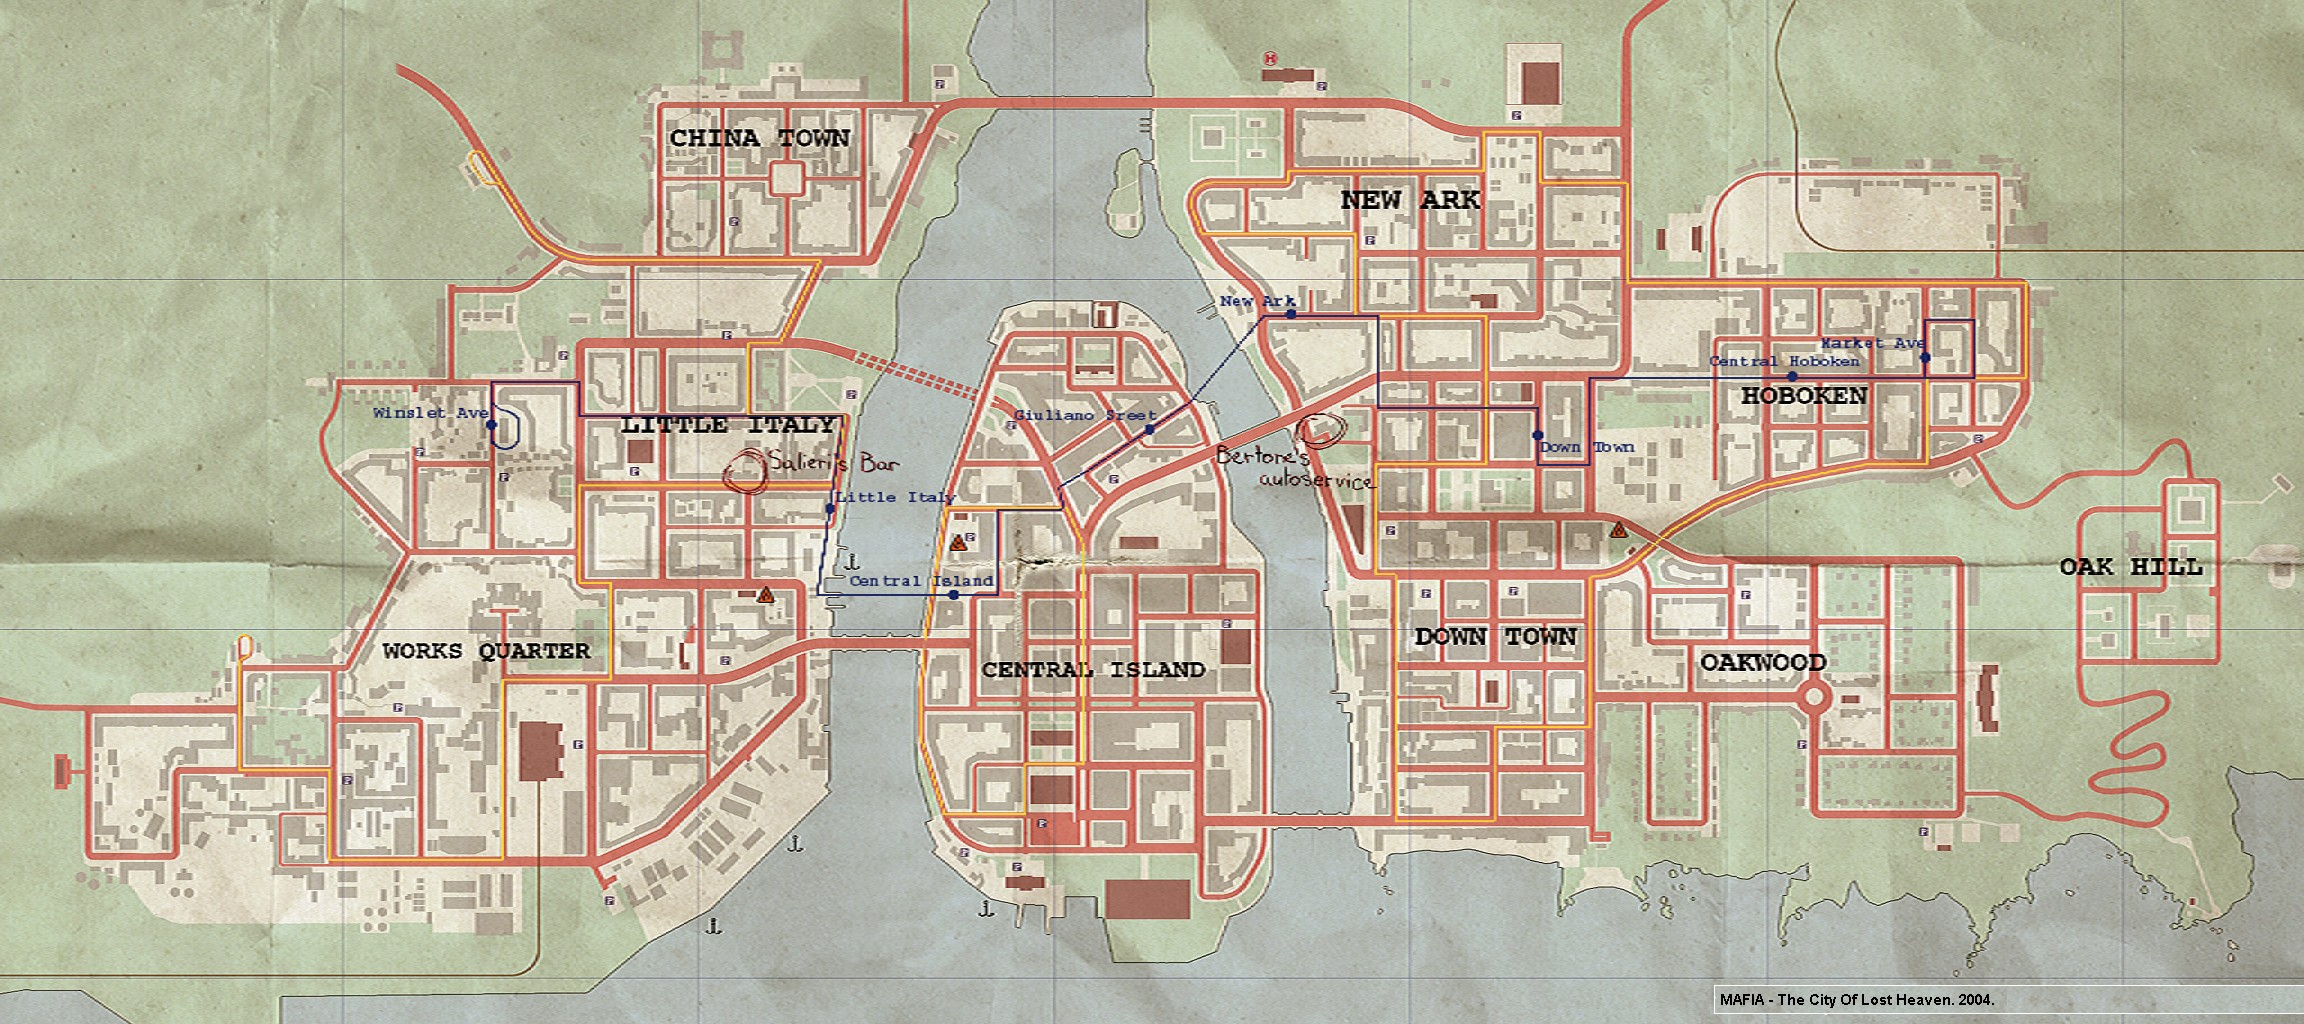 Чит Коды Mafia The City Of Lost Heaven